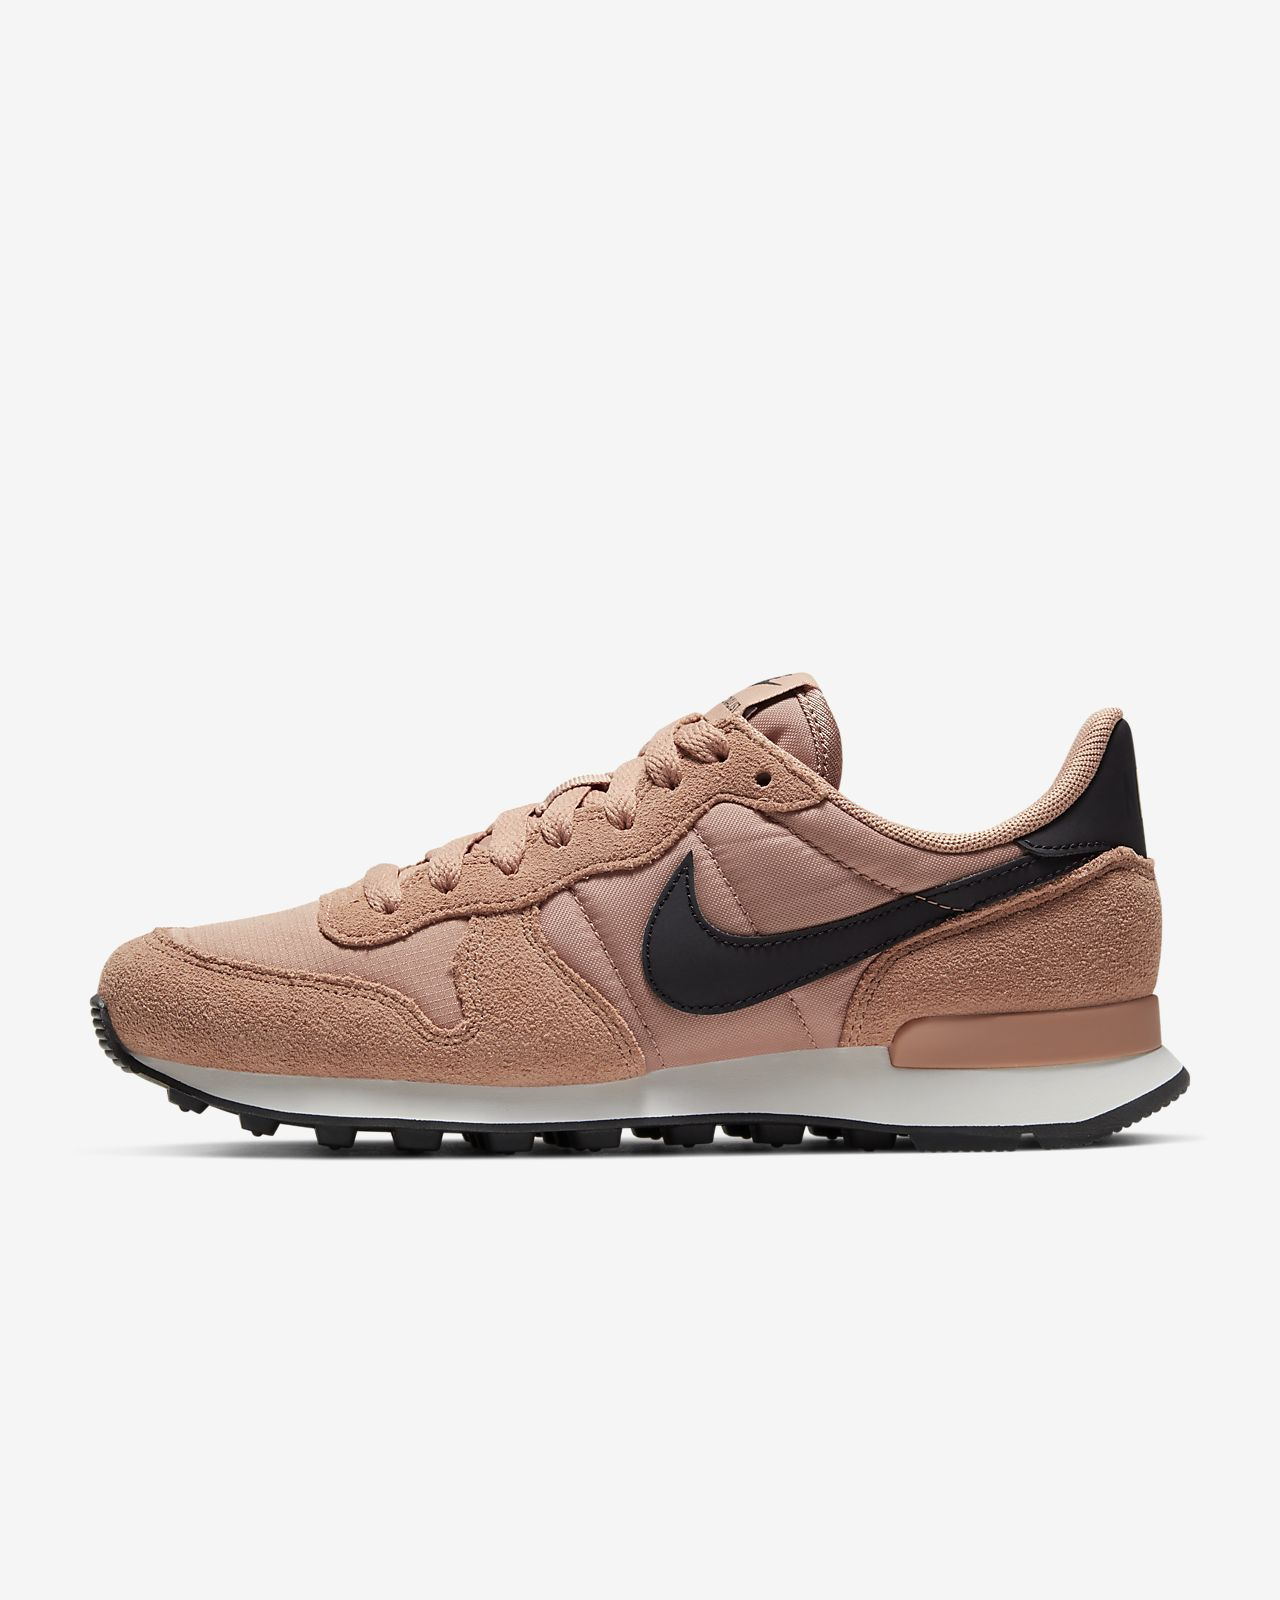 brand new 4d921 77dfa Low Resolution Chaussure Nike Internationalist pour Femme Chaussure Nike  Internationalist pour Femme